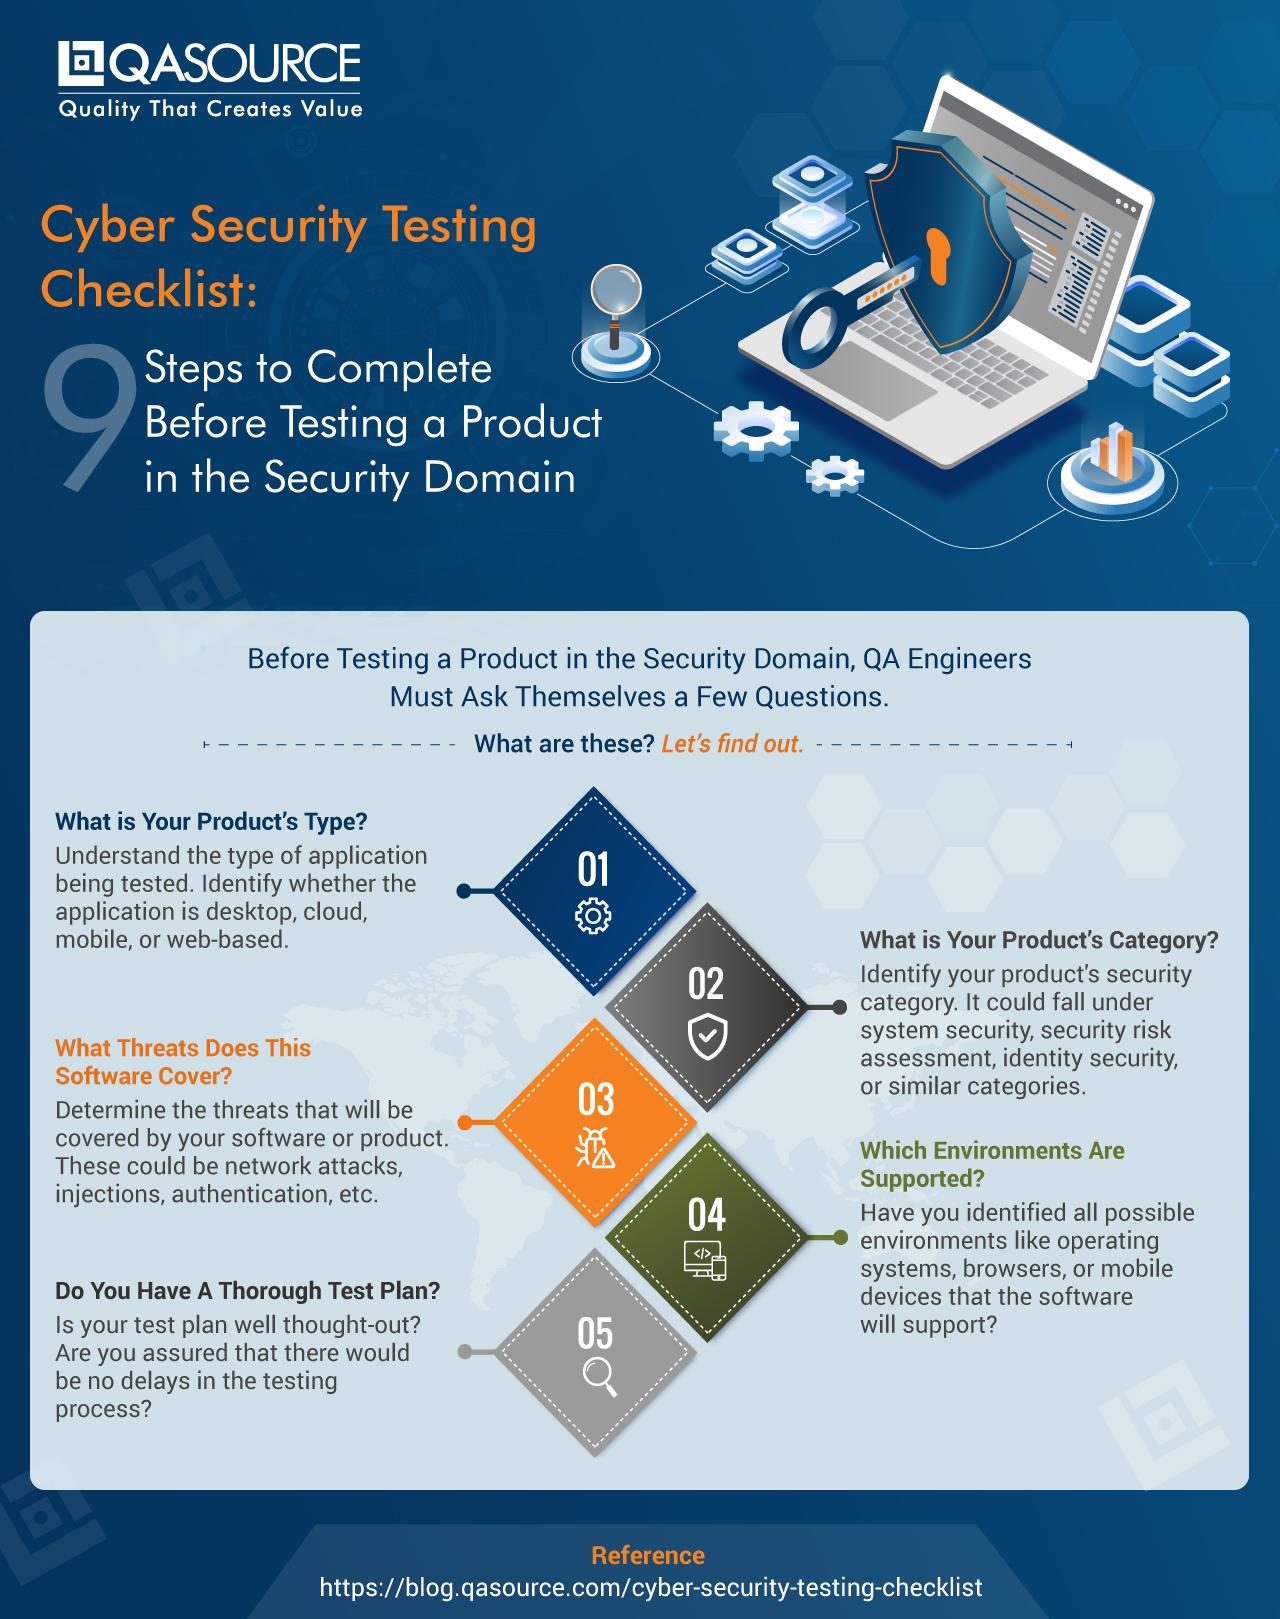 Cyber Security Testing Checklist: 9 Steps To Complete Before Testing a Product in the Security Domain (Infographic)